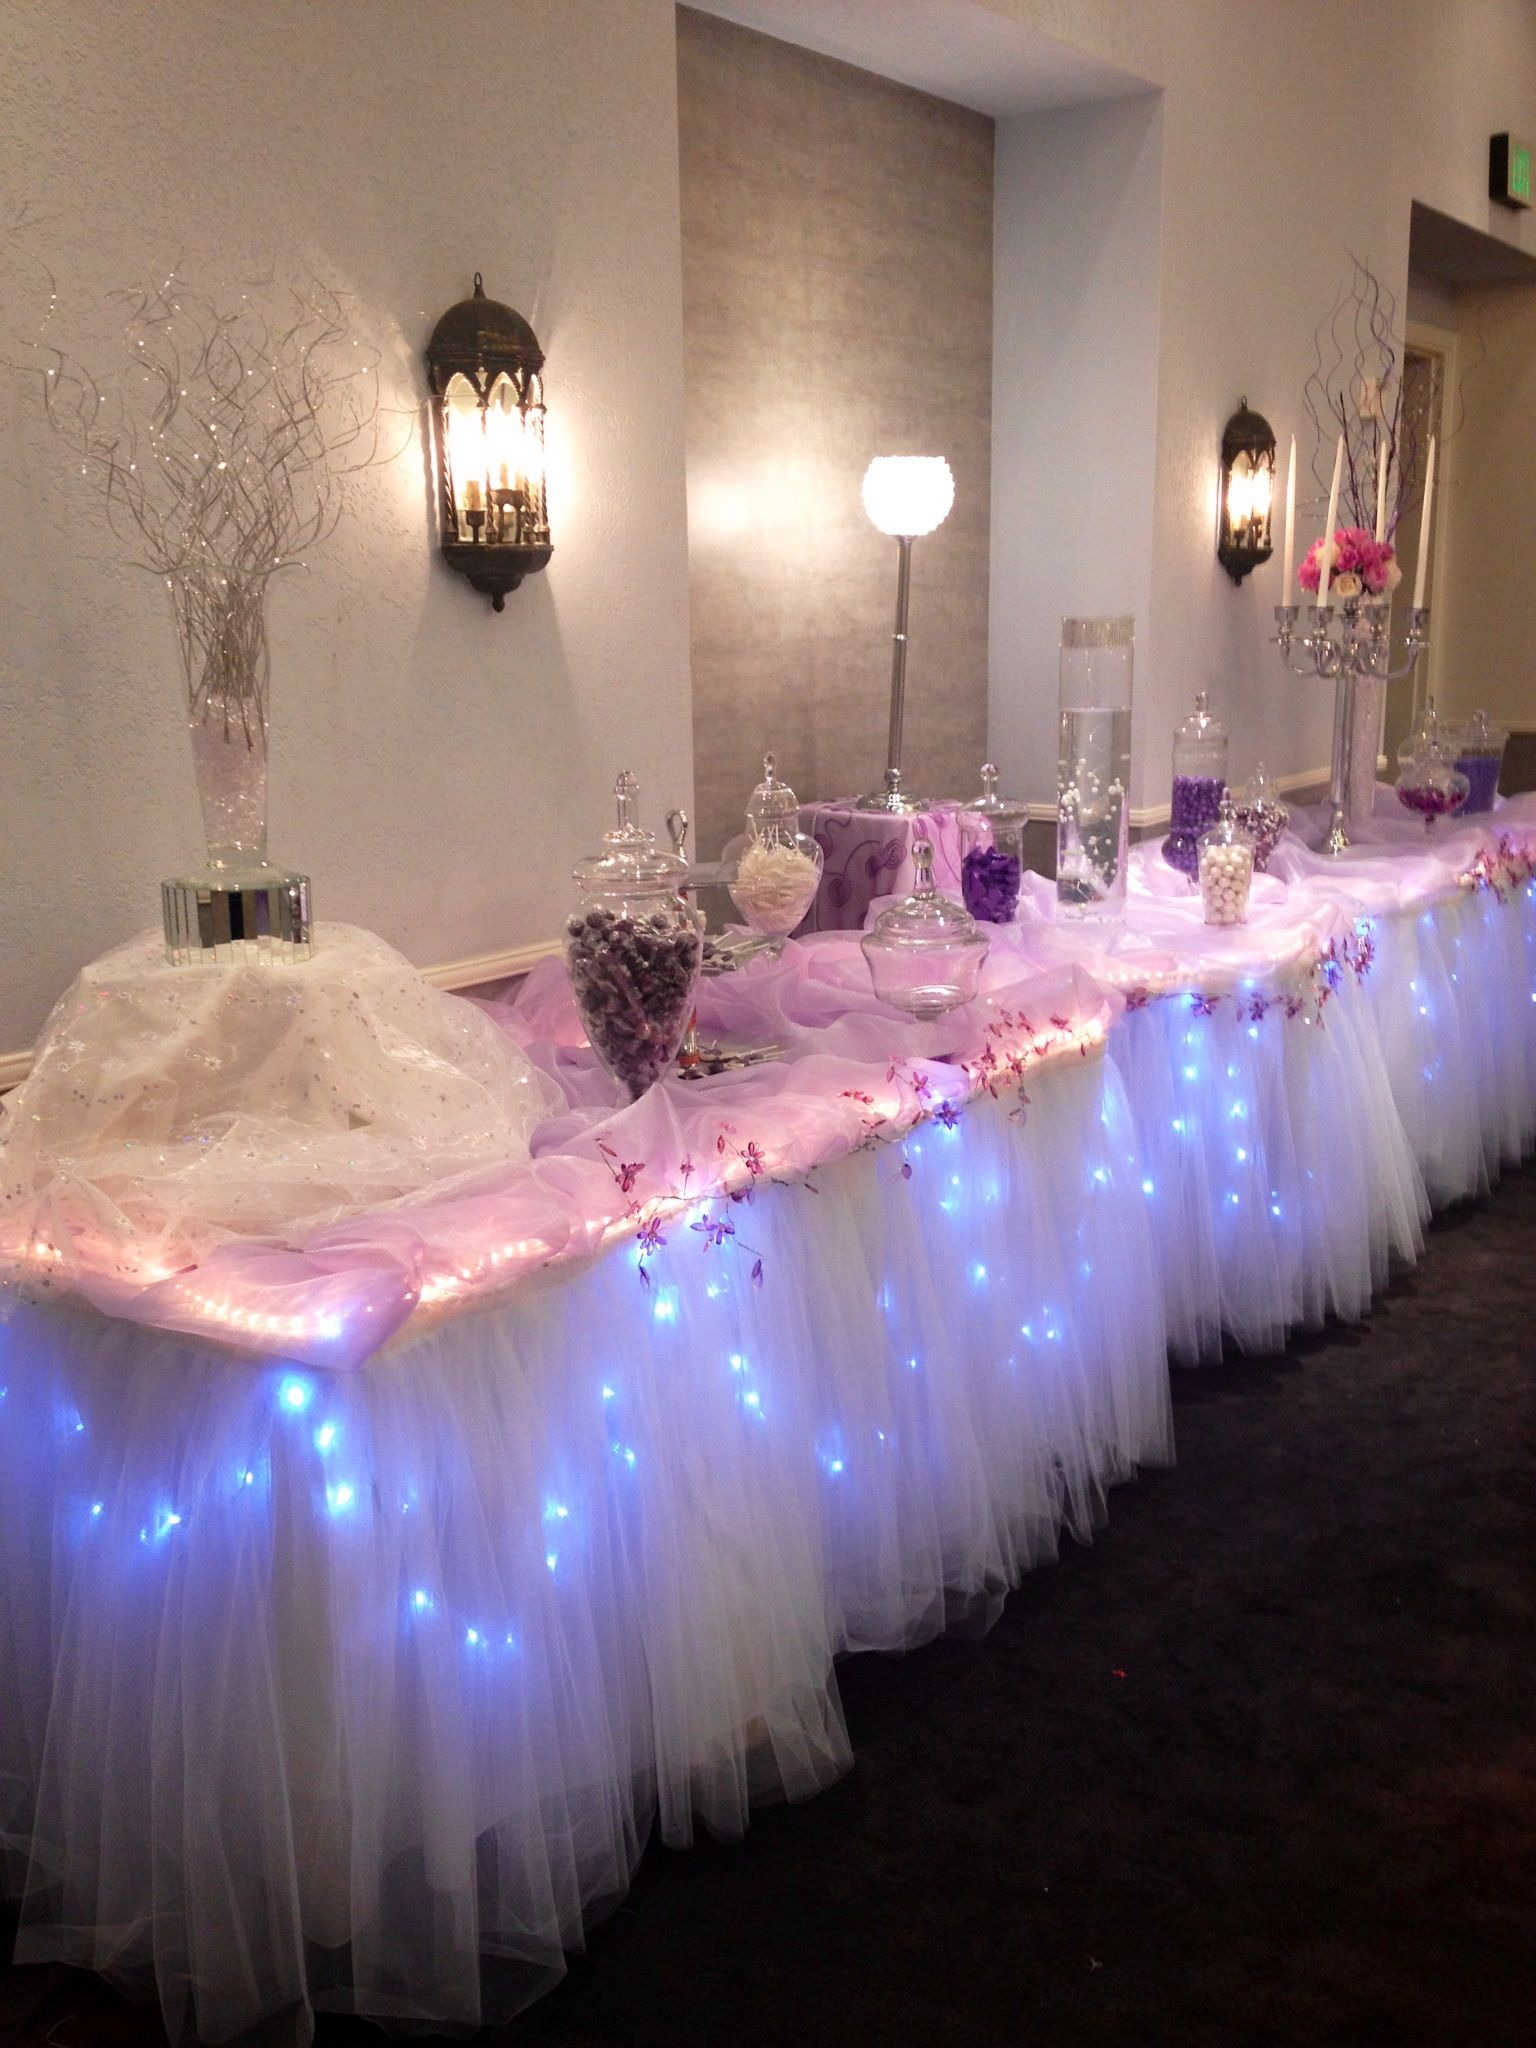 Candy station for Quinceanera. Decorations ... & Candy station for Quinceanera | deco | Pinterest | Sweet 16 Quince ...